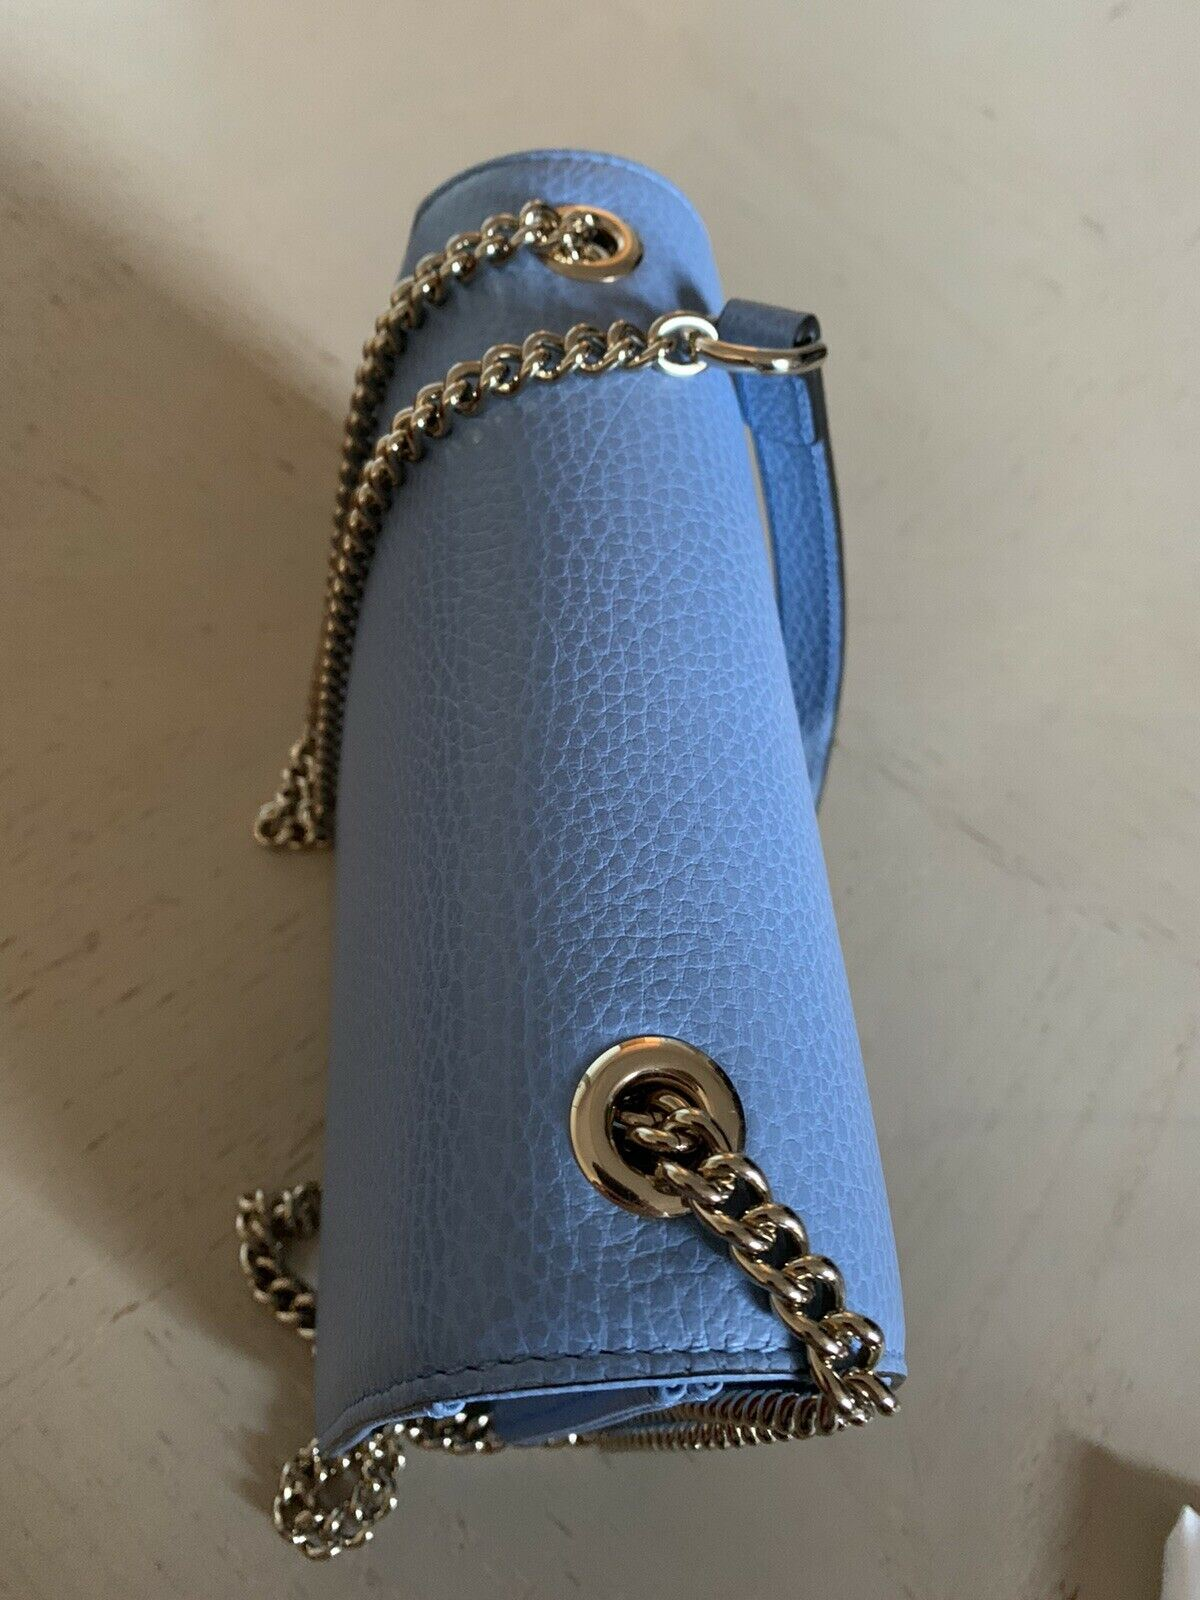 New Gucci Women's Dollar Calfskin Leather Sholder Crossbody Bag Blue 510304